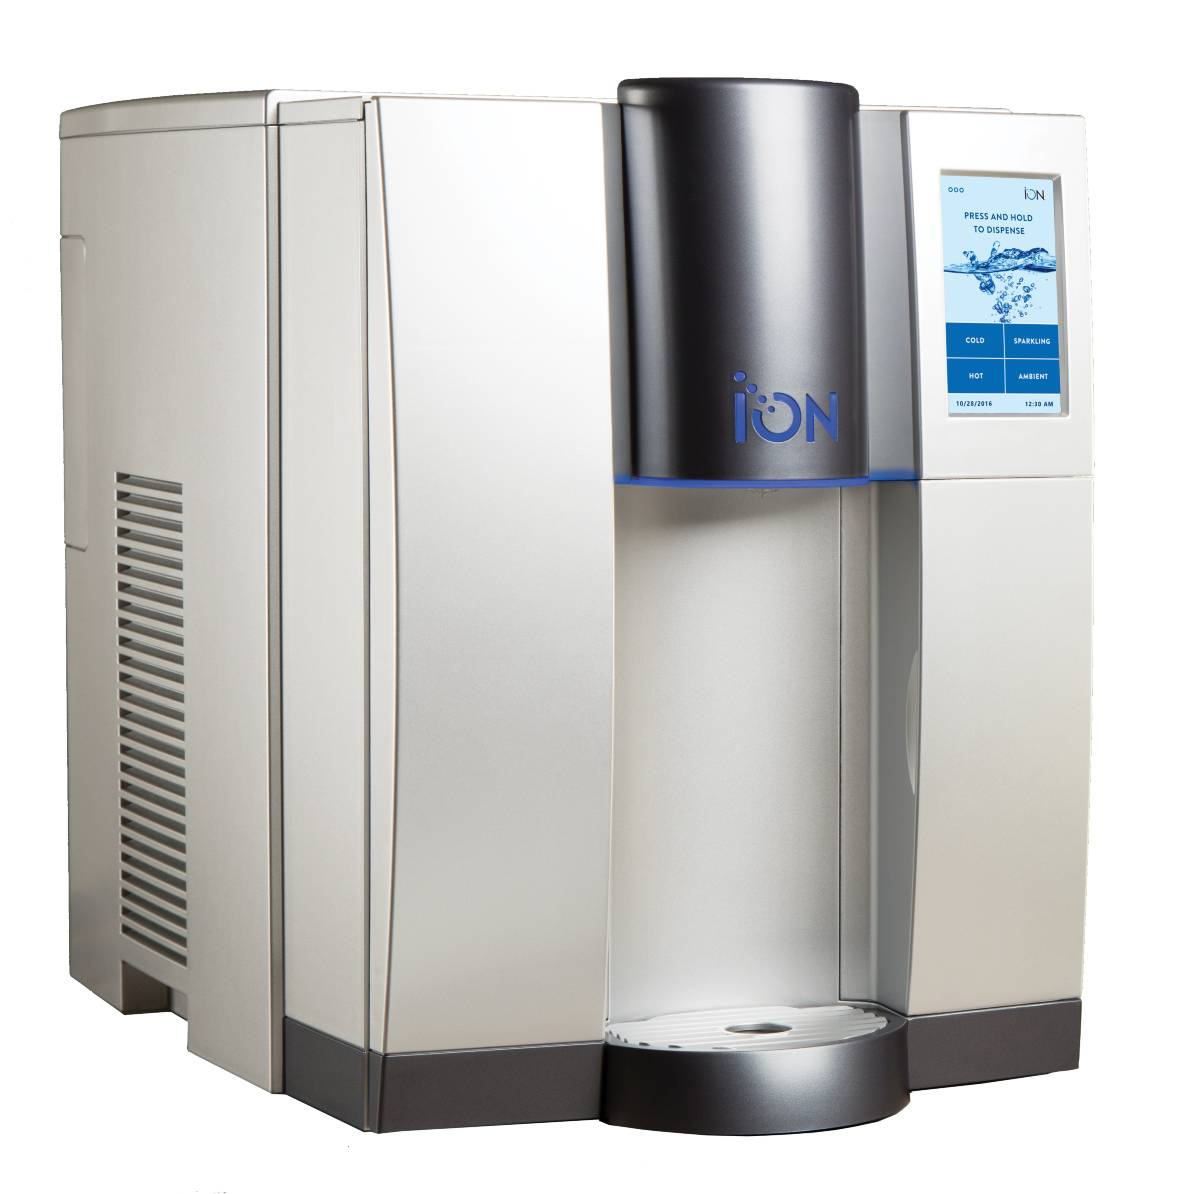 ION waterkoeler, ION leidingwaterkoeler, ION watercooler